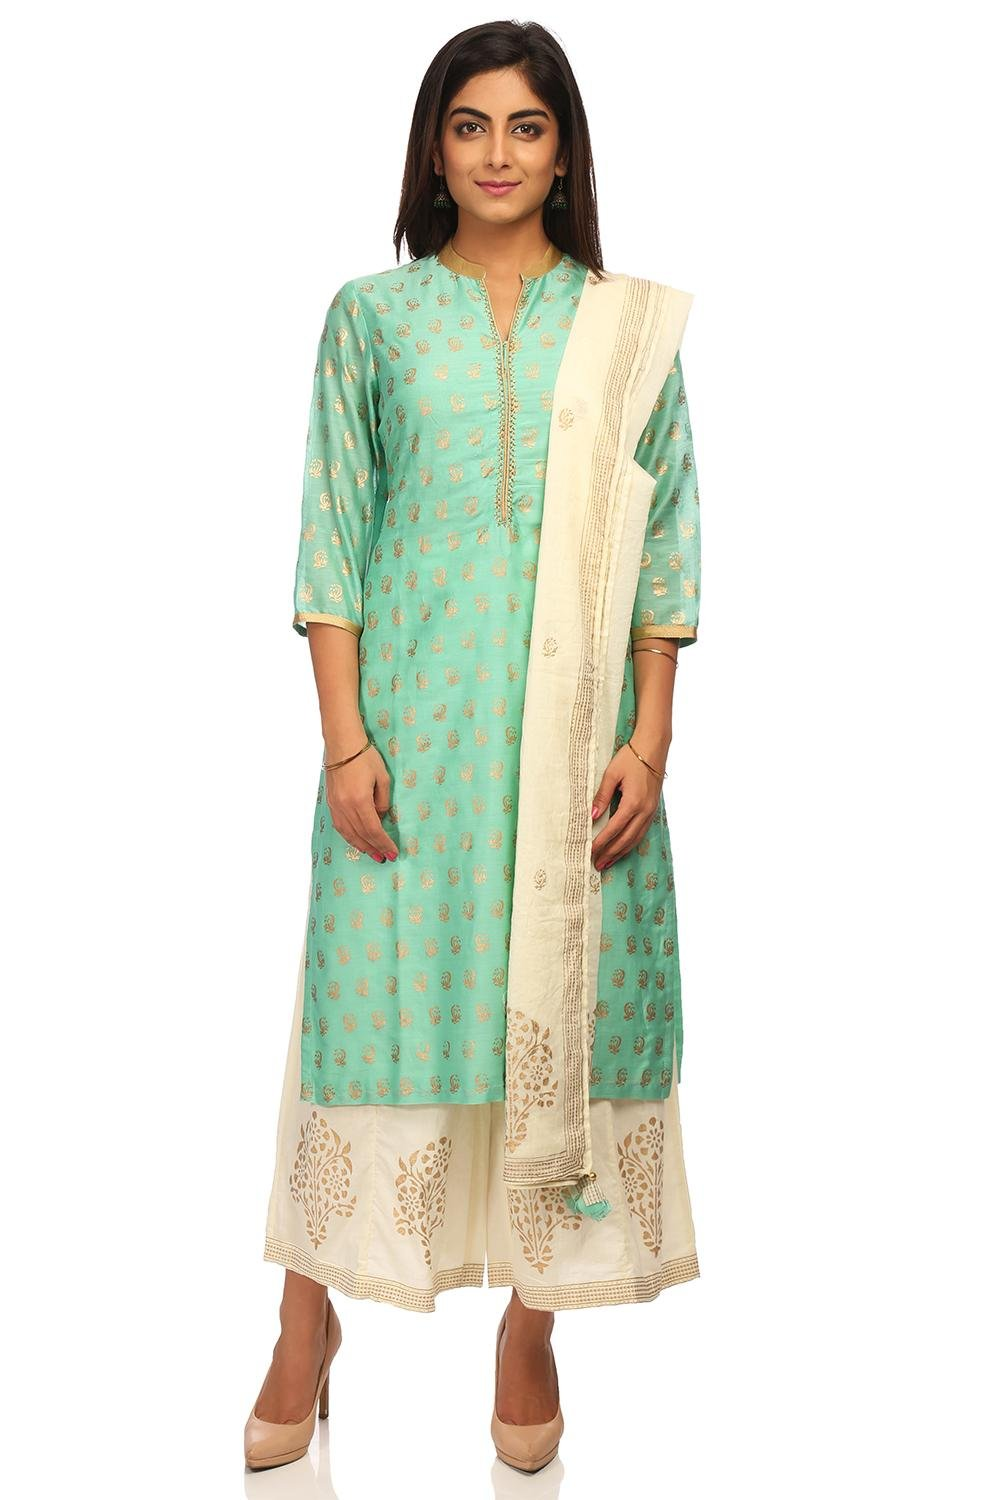 BIBA Women's Sea Green Straight Cotton Silk Suit Set Size 32